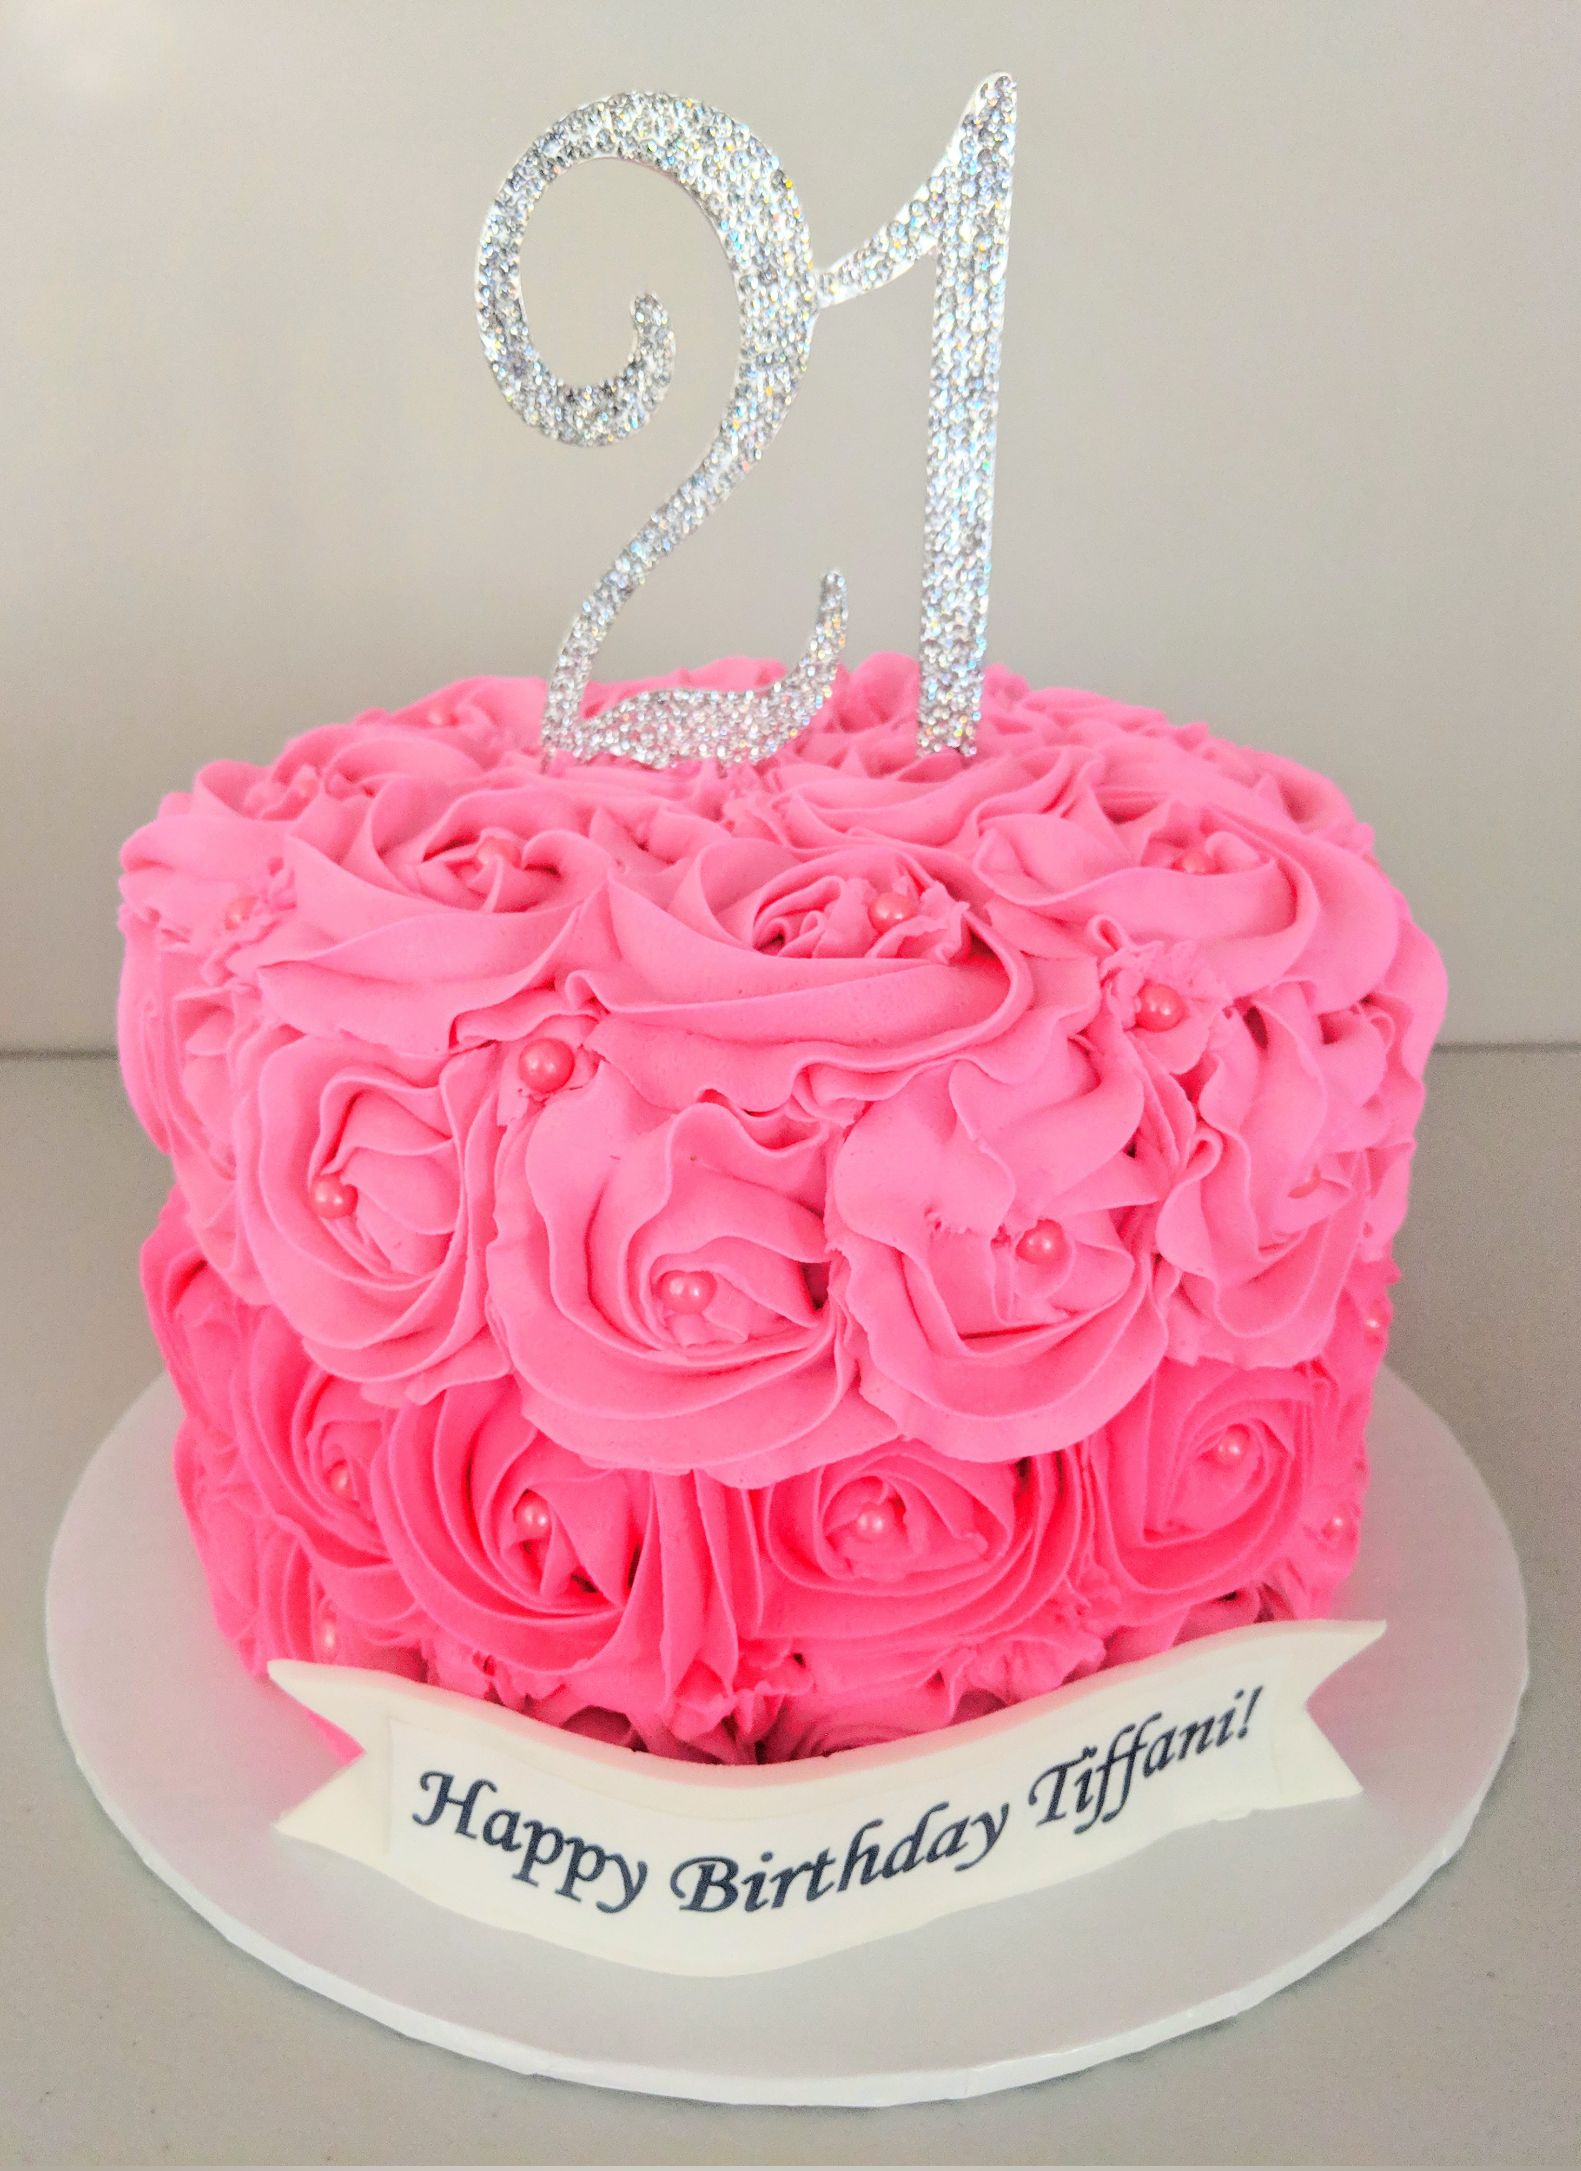 Shades of Pink Rosette Cake